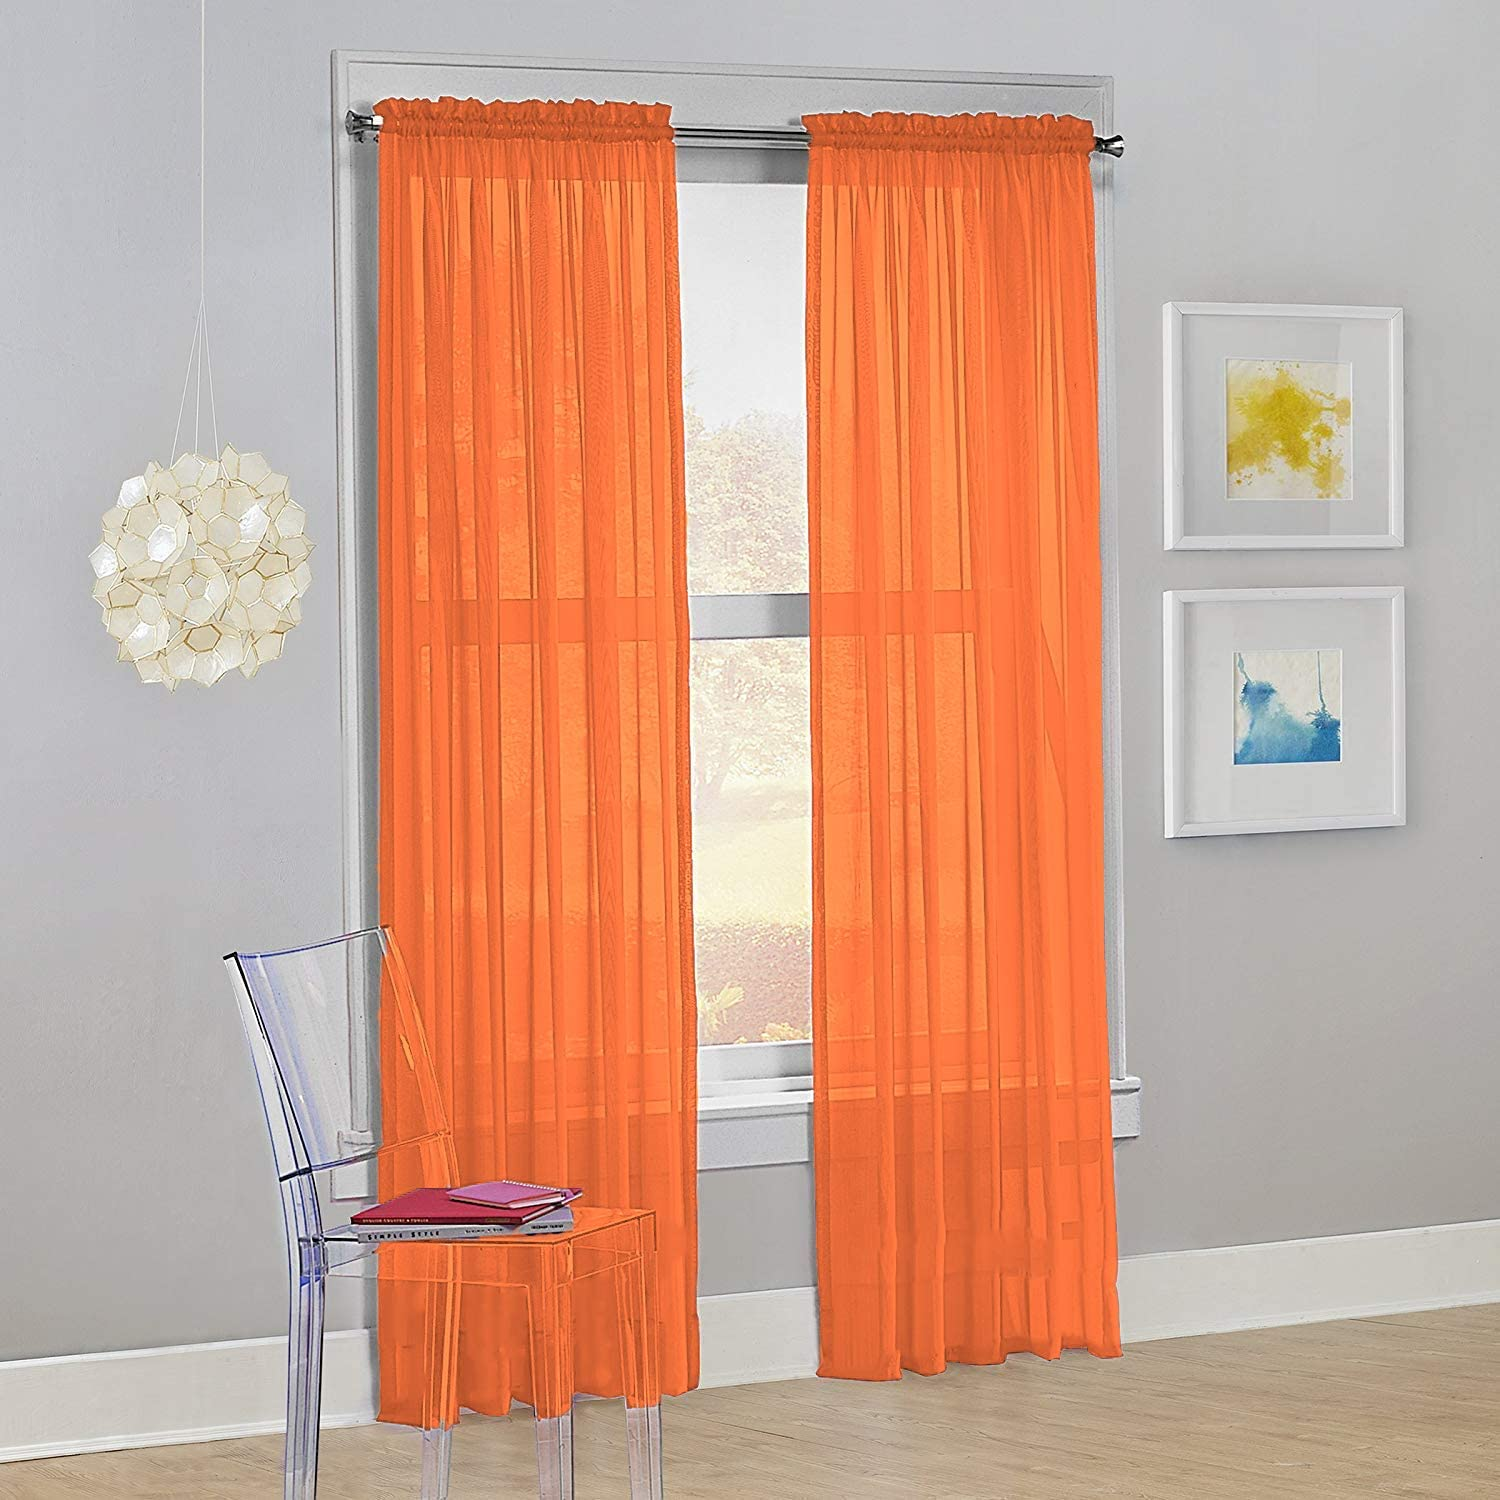 "DiamondHome Set of 2 Piece Beautiful Sheer Window Elegance Curtains-Drape-Panels-Treatment 54"" X 84"" (Orange)"